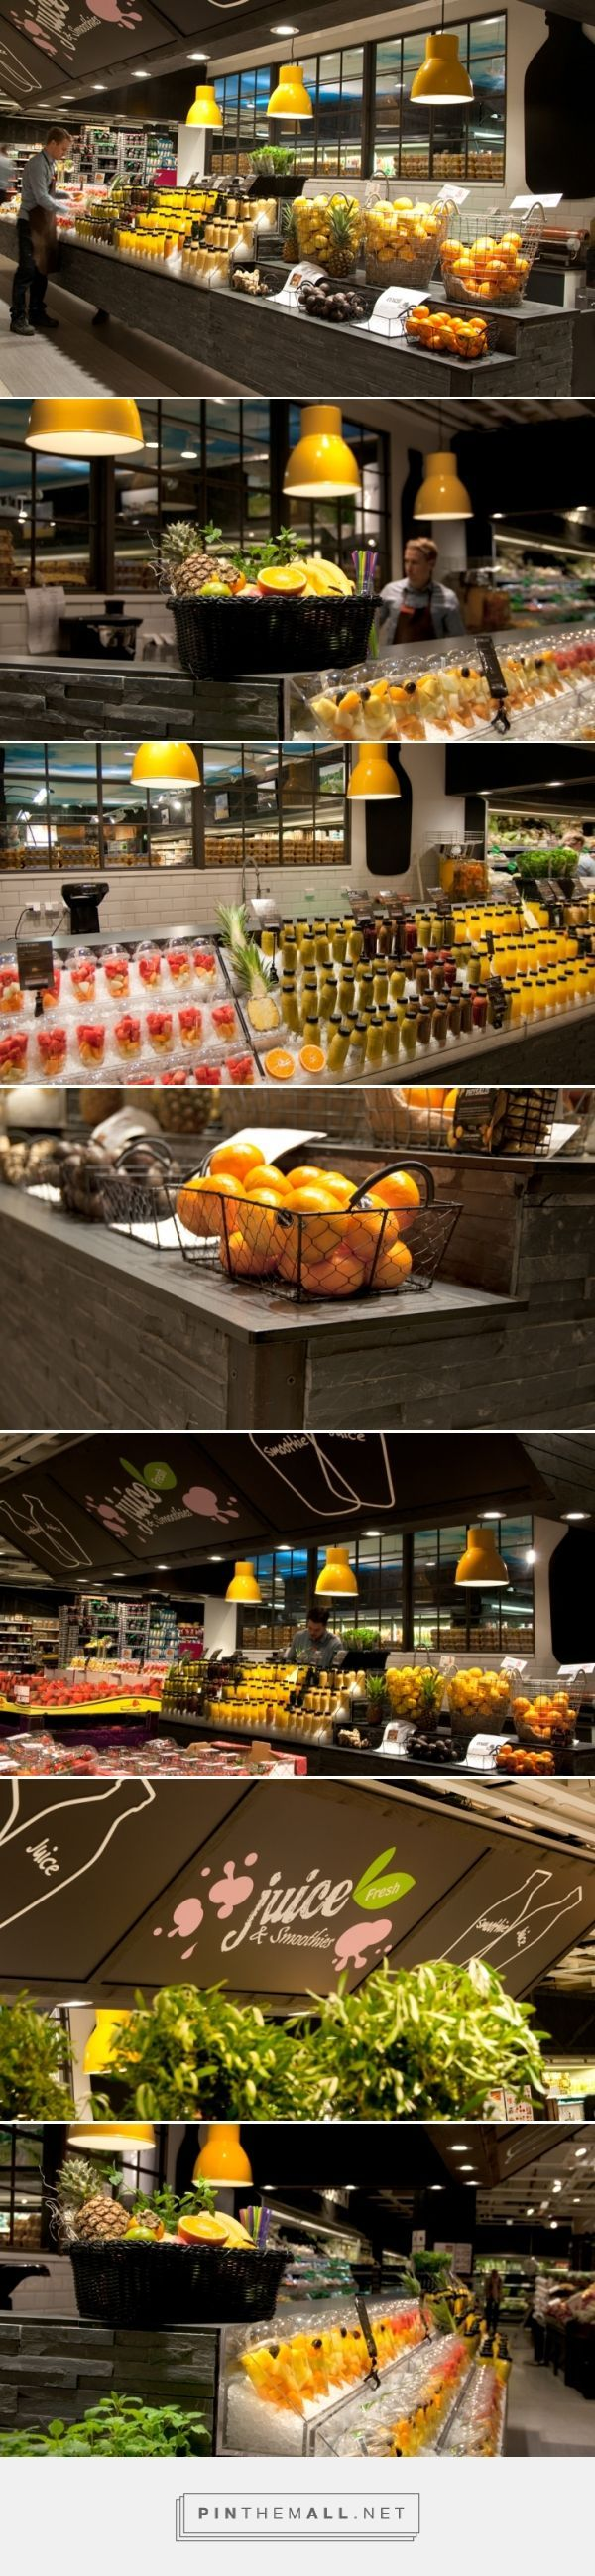 ICA Liljeholmen – Juice & Smoothie Bar by IDEI Concepts AB, Stockholm – Sweden » Retail Design Blog... - a grouped images picture - Pin Them All